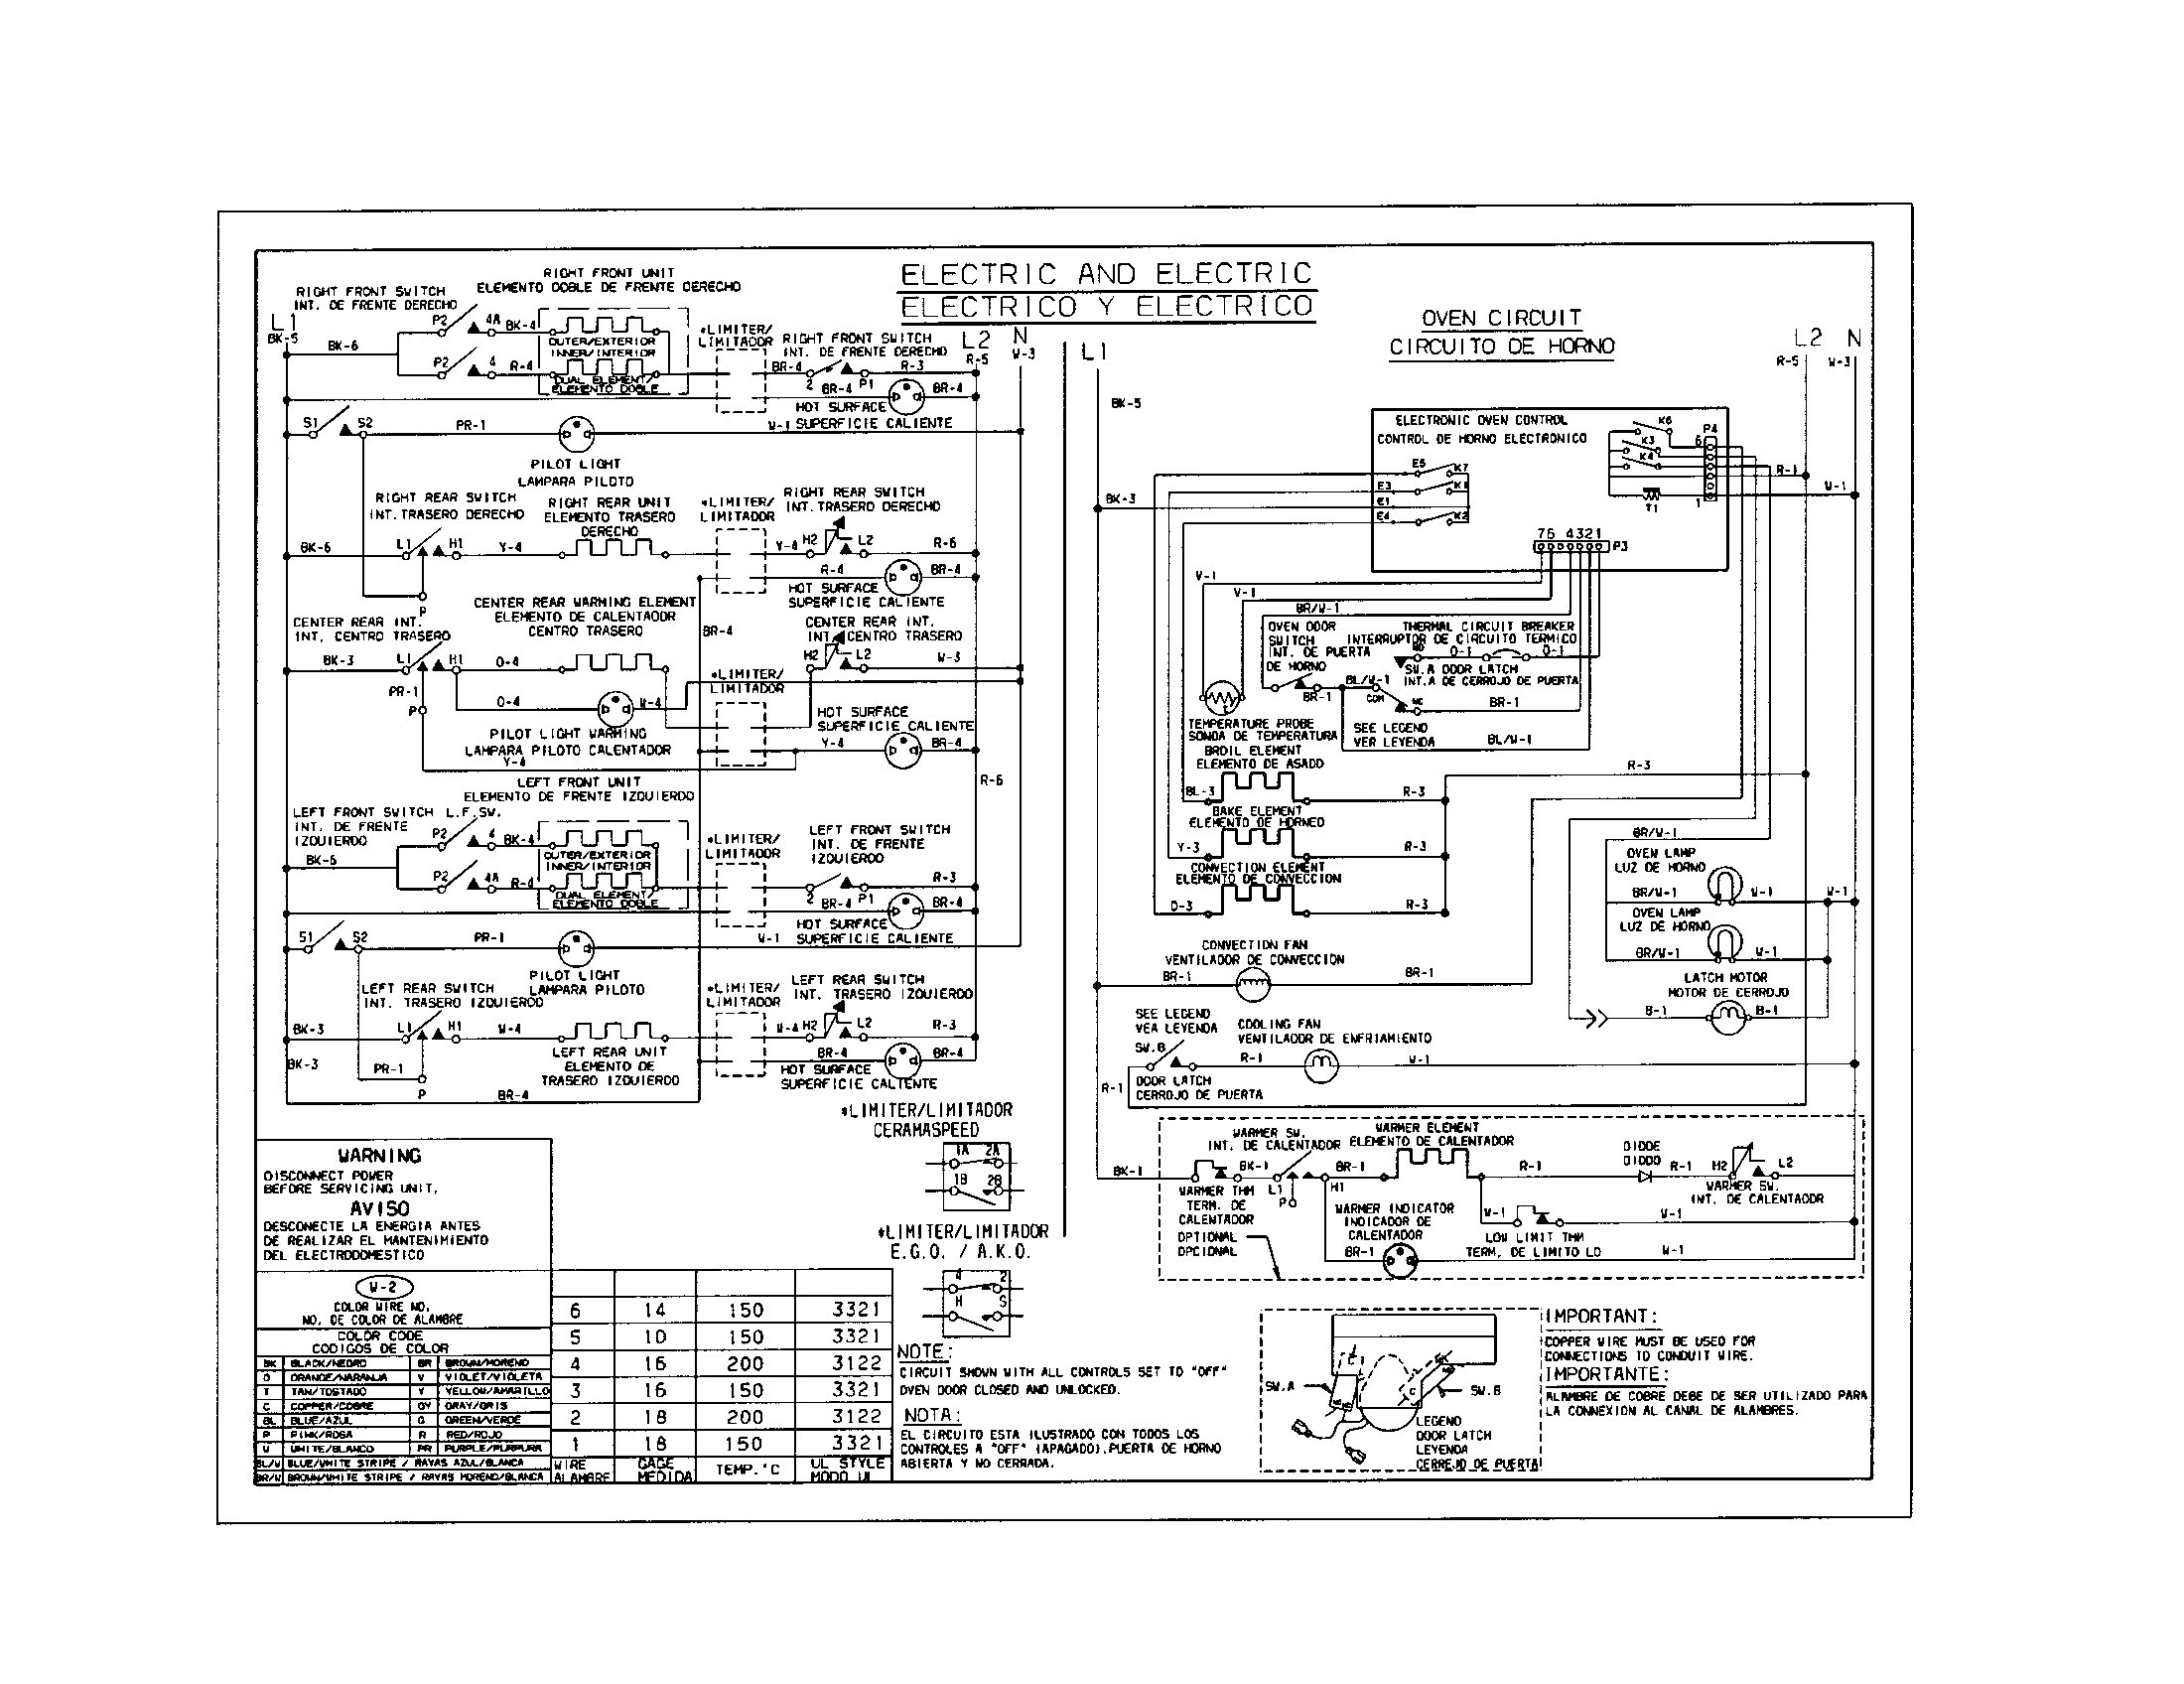 Wiring Schematic For Kenmore Washer Another Blog About 80 Series Washing Machine Parts Diagram Sears Dryer Diagrams Box Rh Cad Fds Co Uk